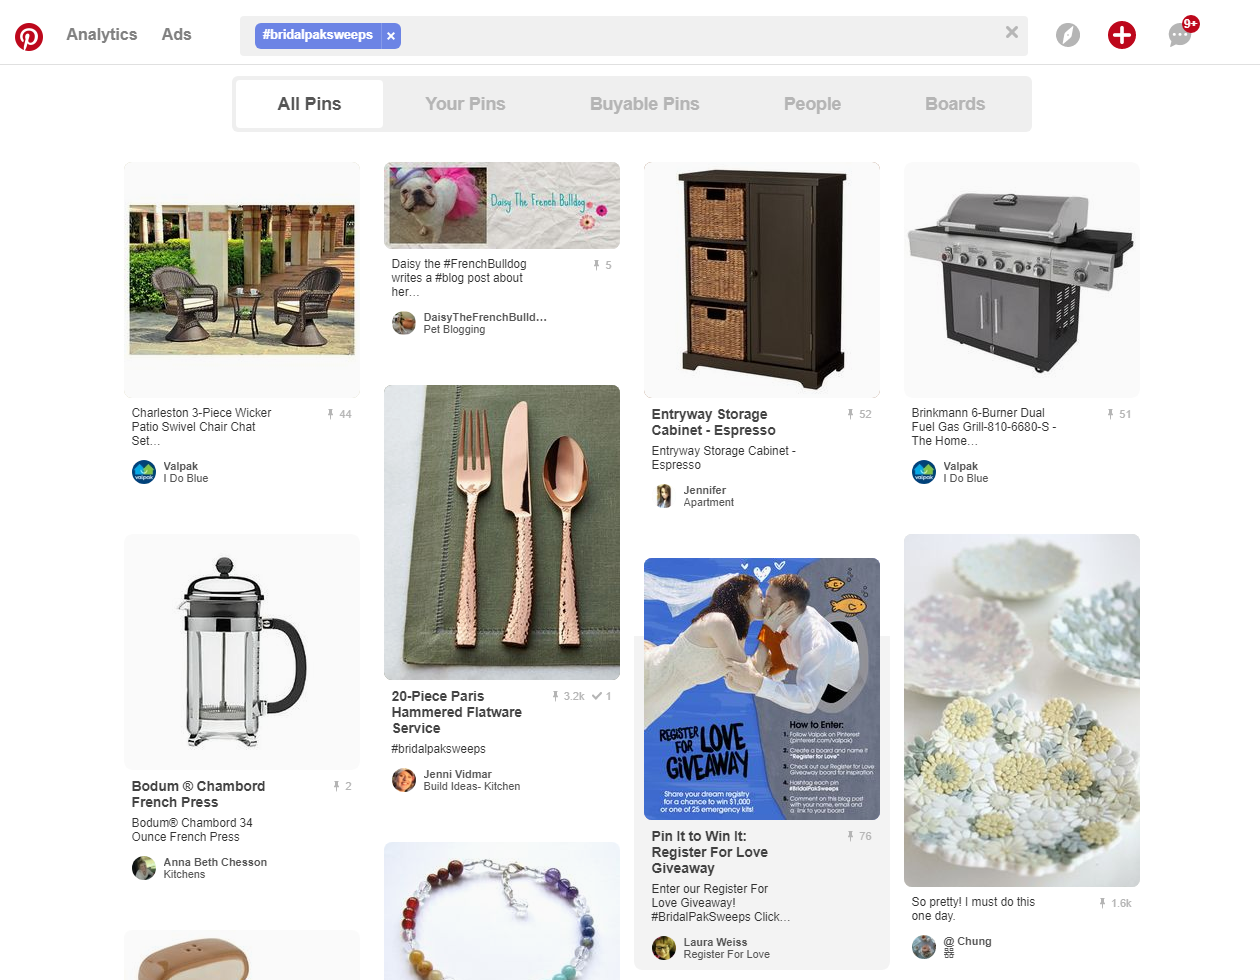 Pinterest contests generate sales